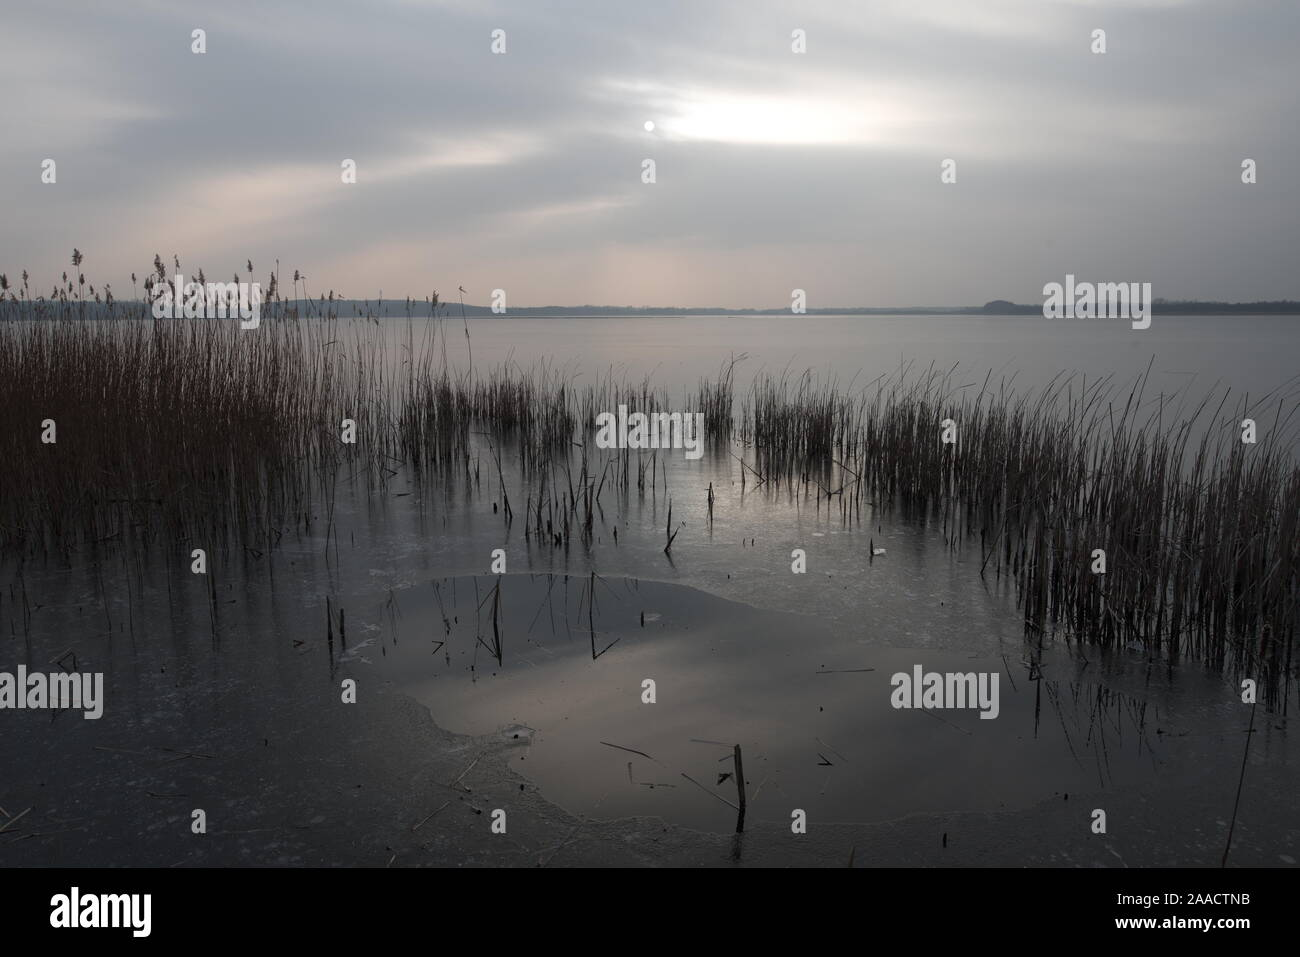 Lake in the village Blankensee near Trebbin in wintertime (Germany) Stock Photo